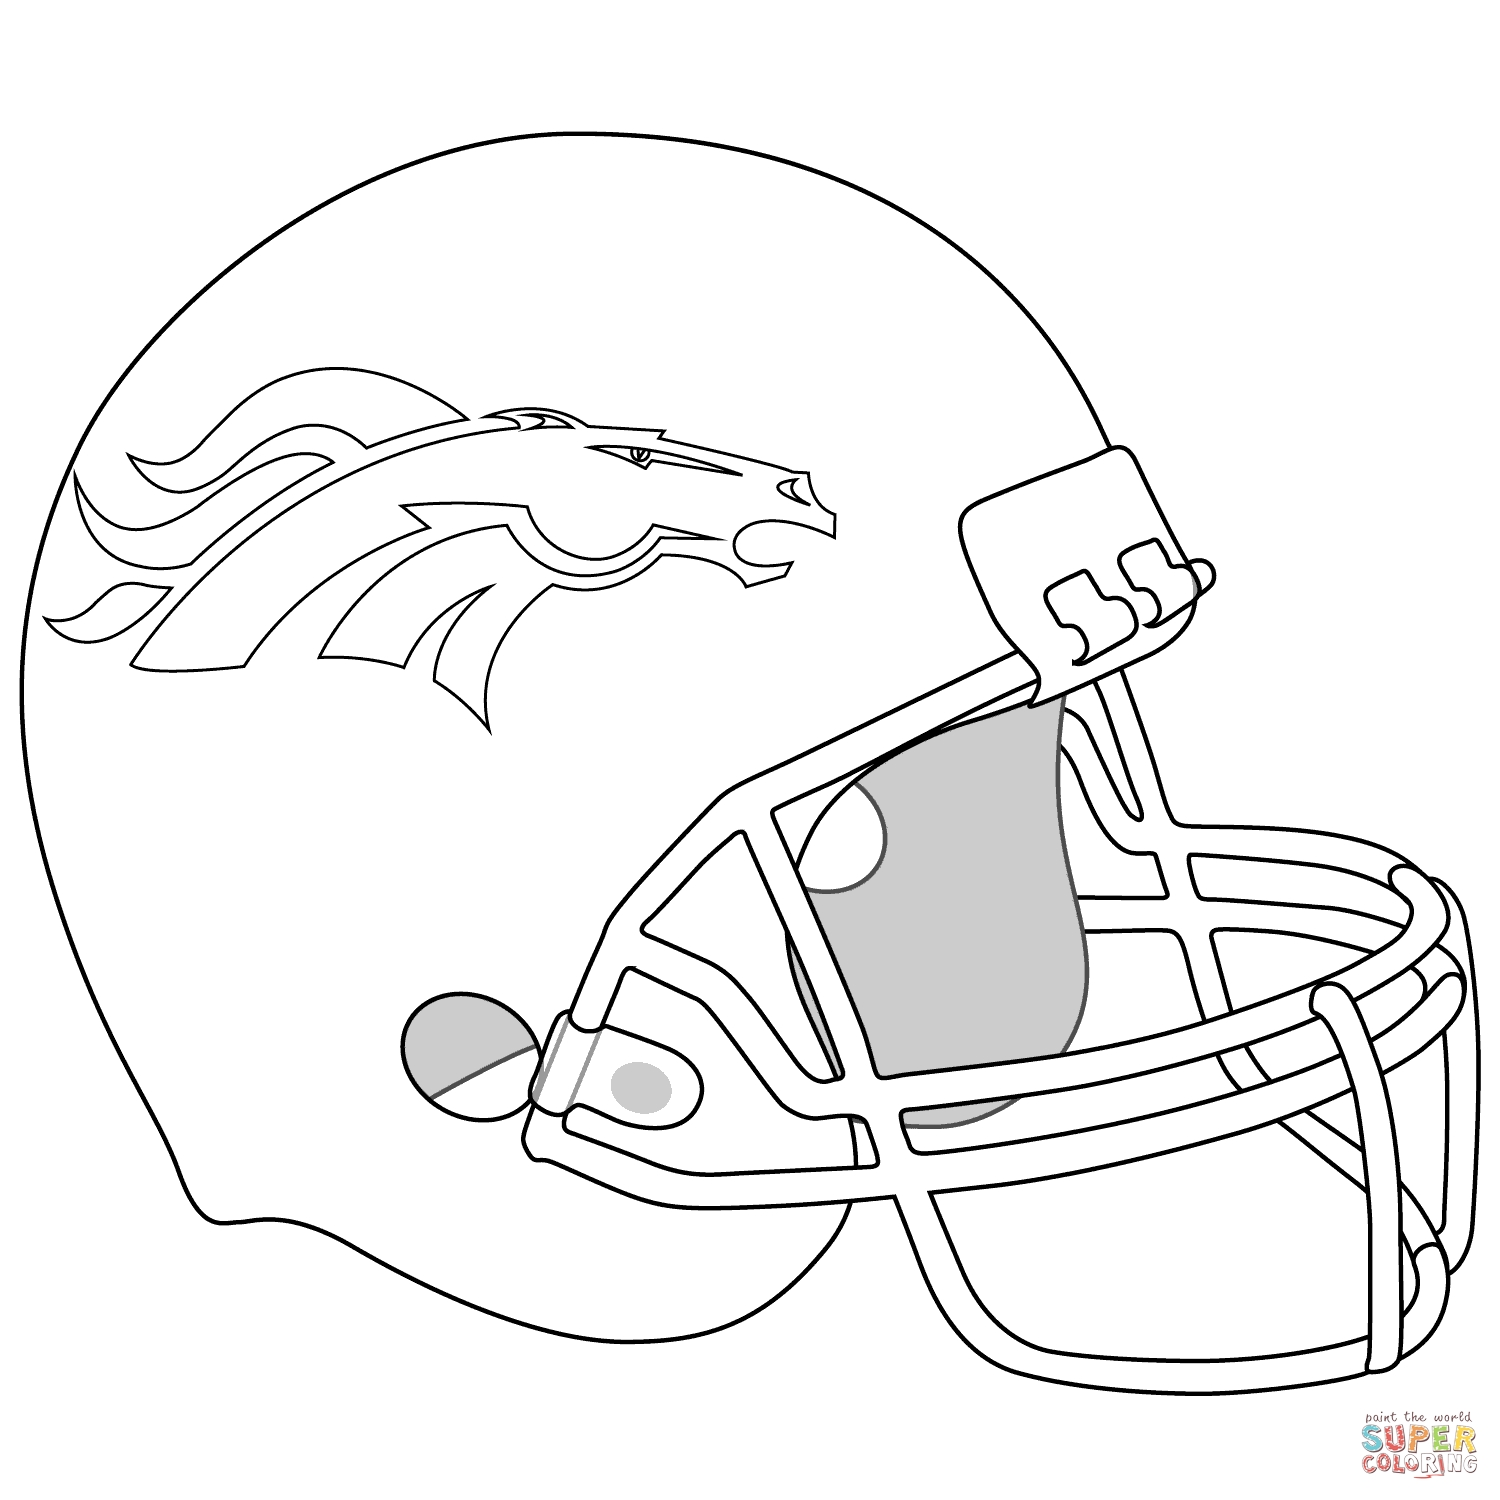 1500x1500 Minnesota Vikings Logo Coloring Page From Nfl Category Select